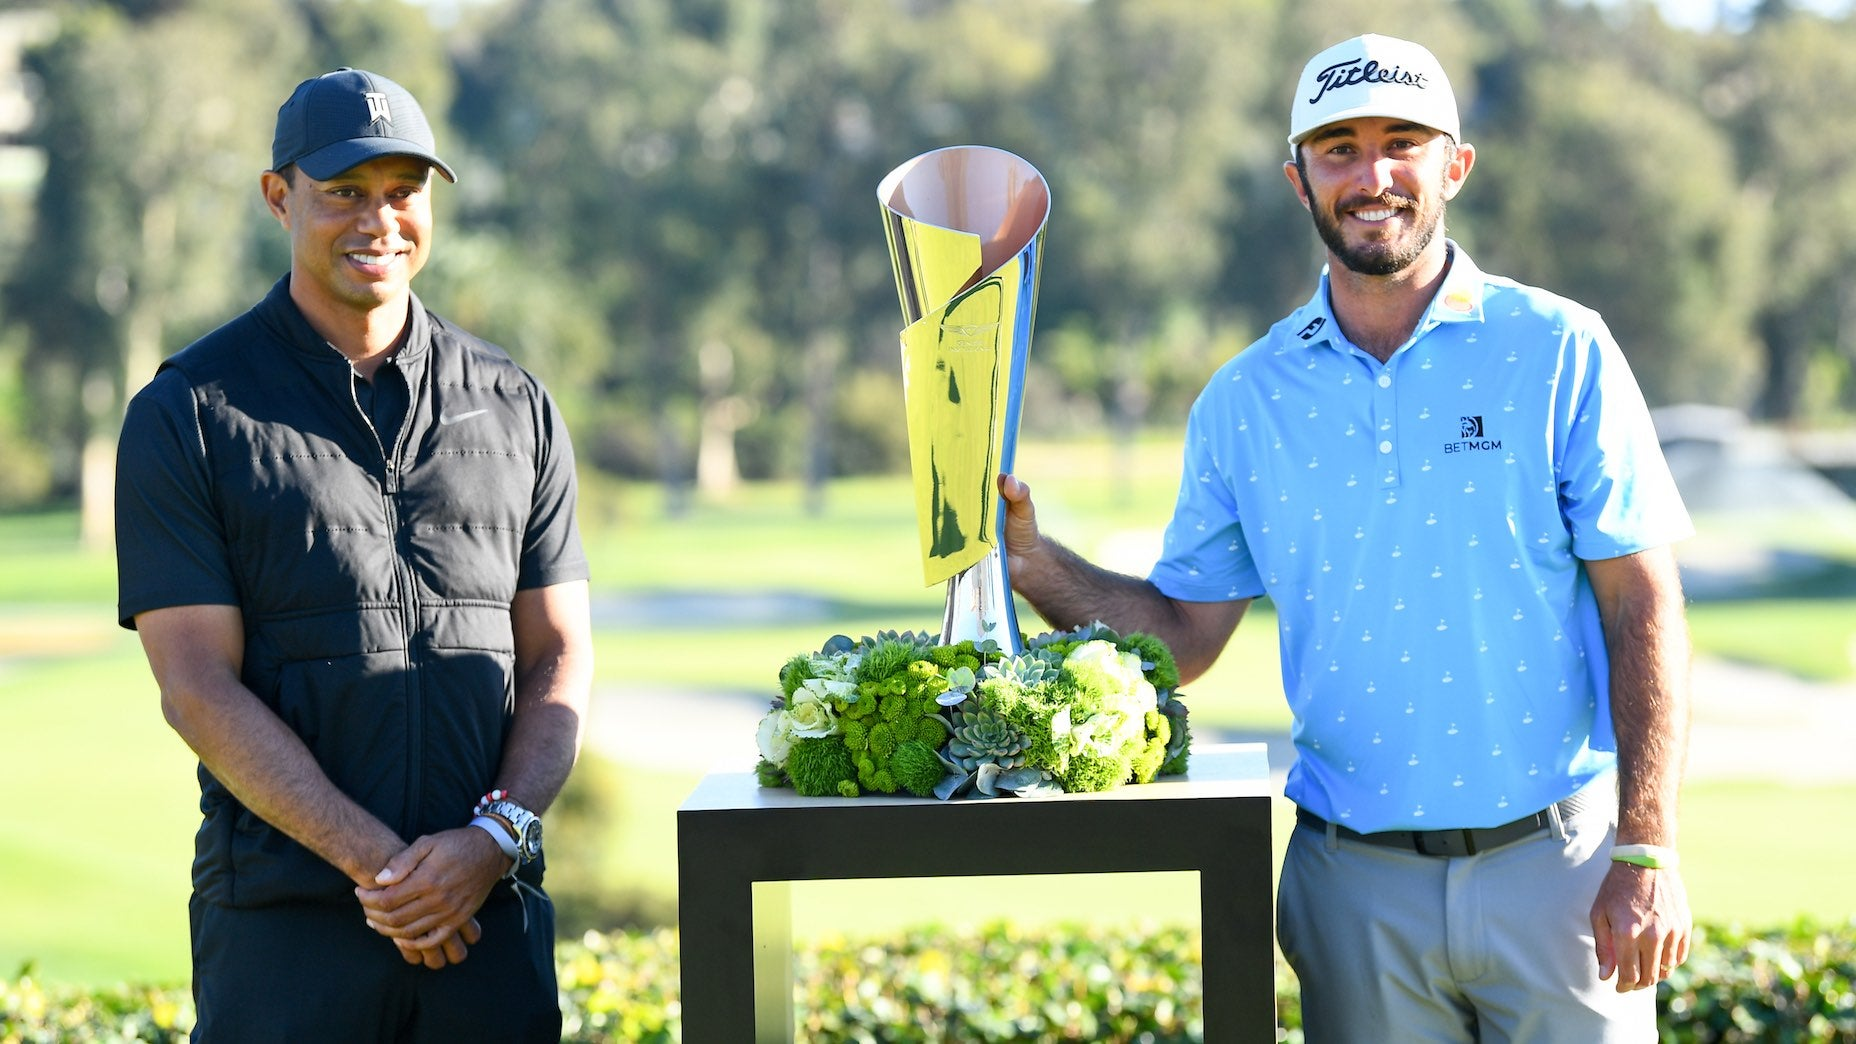 Tiger Woods presented Max Homa with the Genesis Invitational trophy on Sunday.